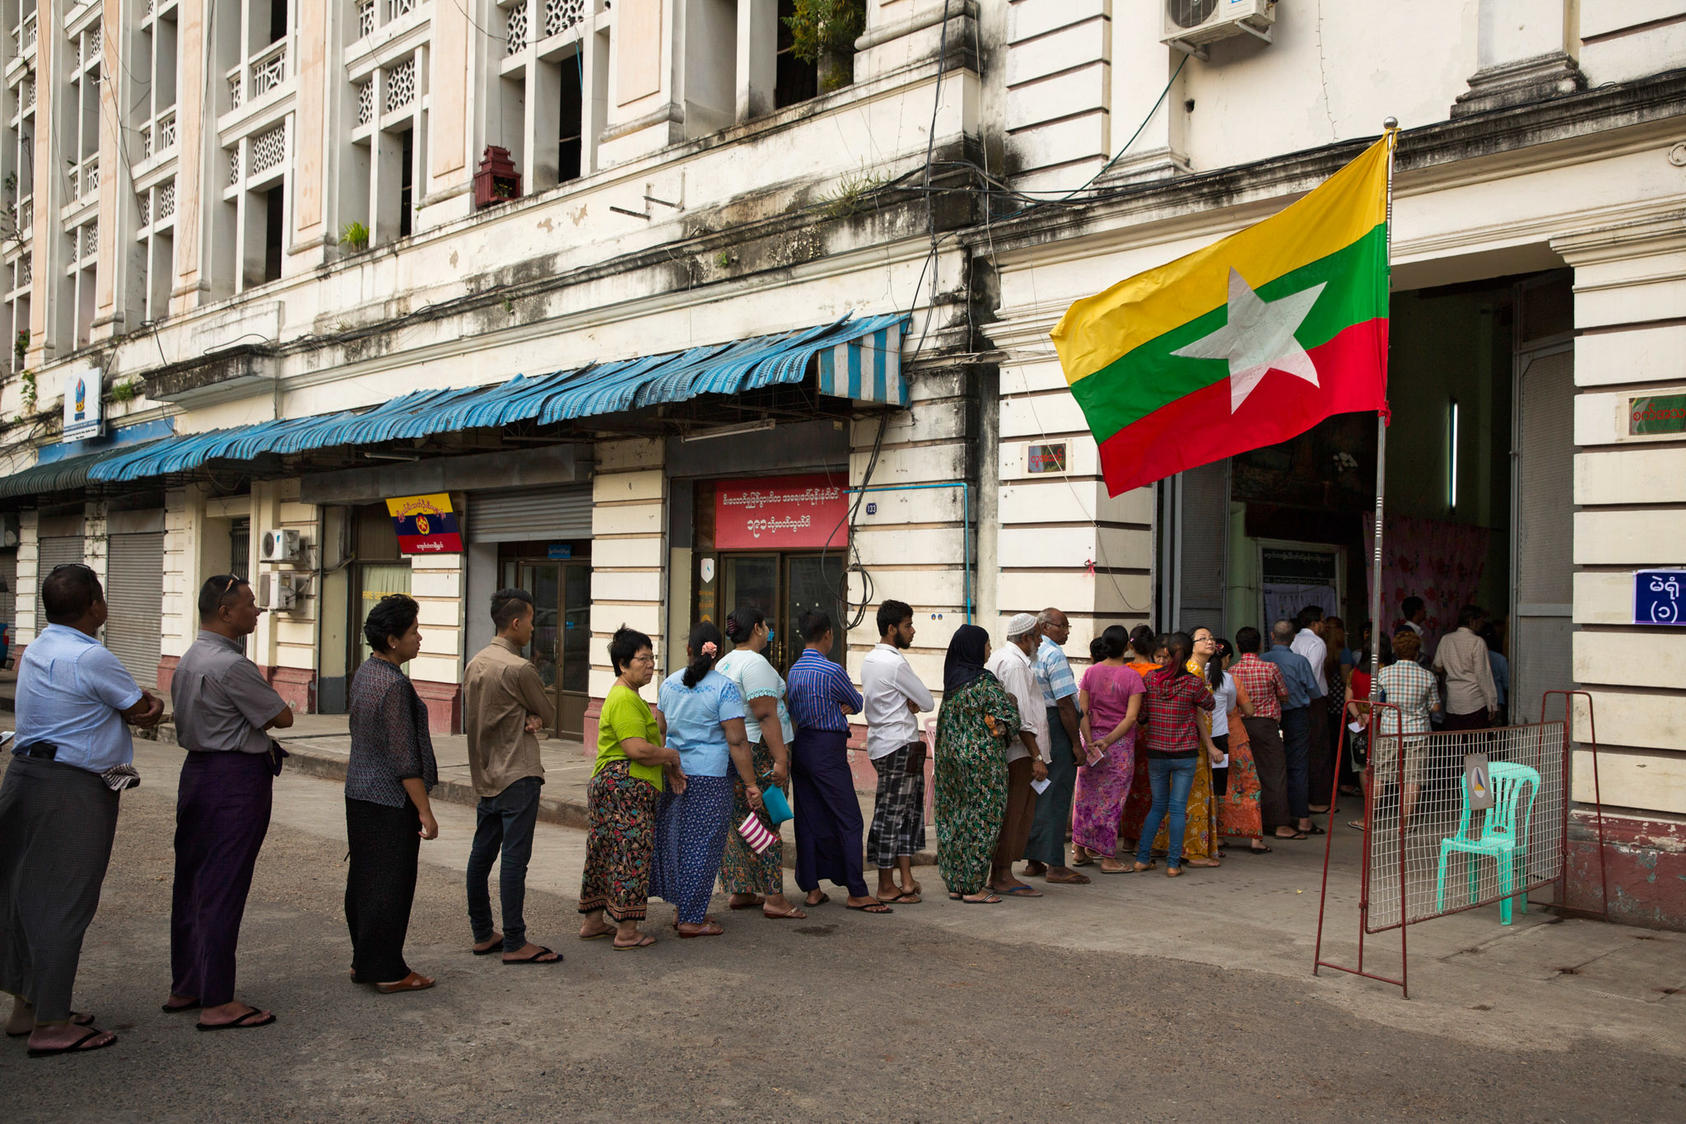 Voters line up outside a polling station in Yangon, Myanmar, Nov. 8, 2015. After five decades of military rule and a series of rigged or canceled elections, voters took part in what many described as their first genuine election. (Adam Dean/The New York Times)